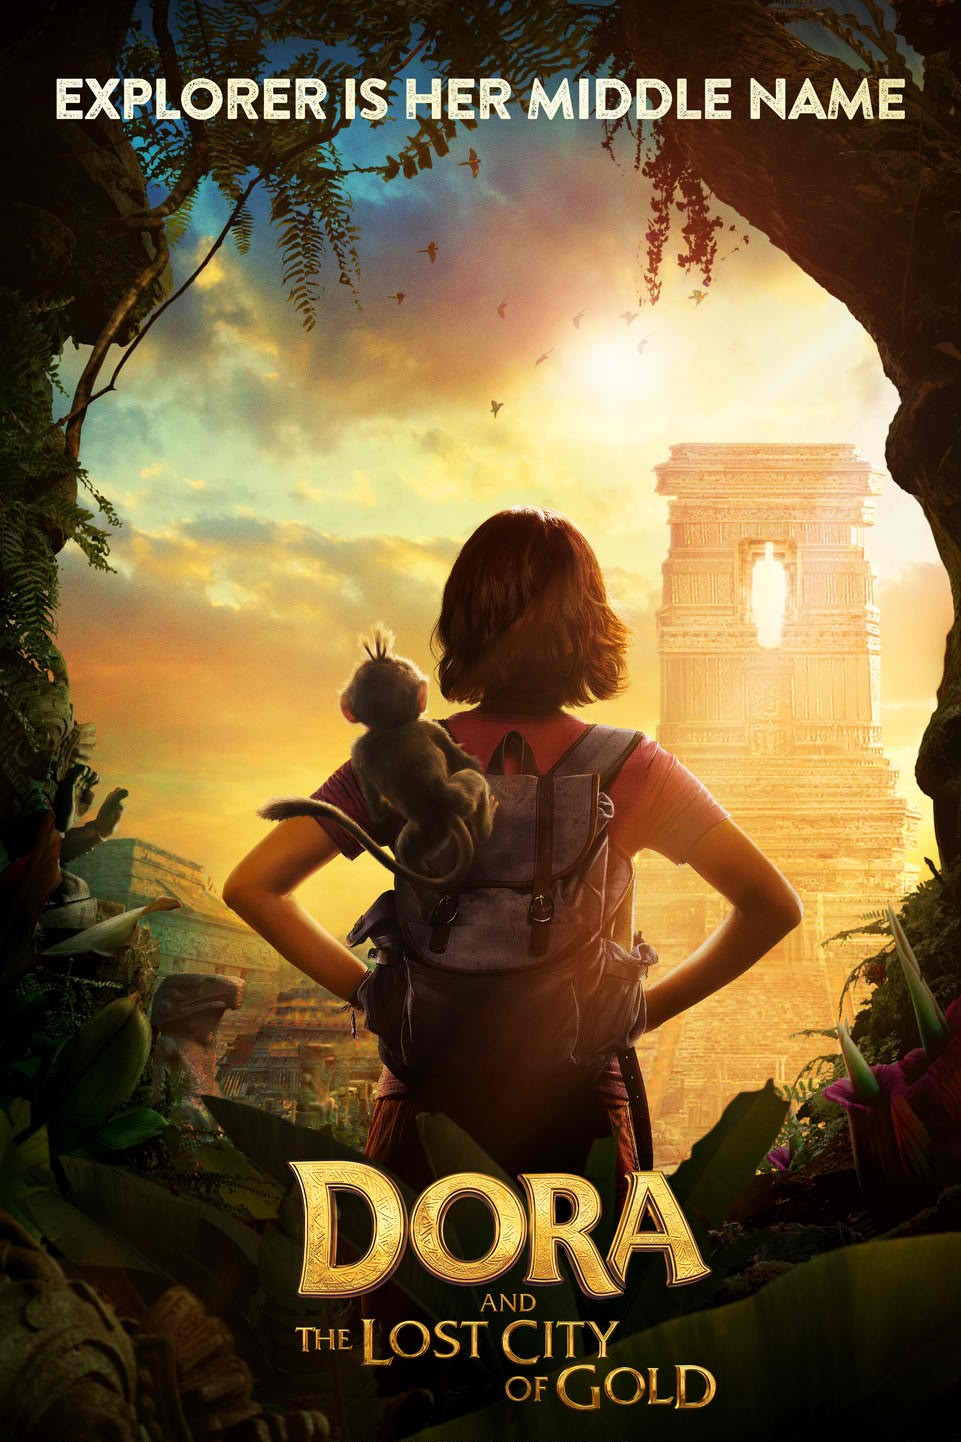 dora_and_the_lost_city_of_gold_xlgc